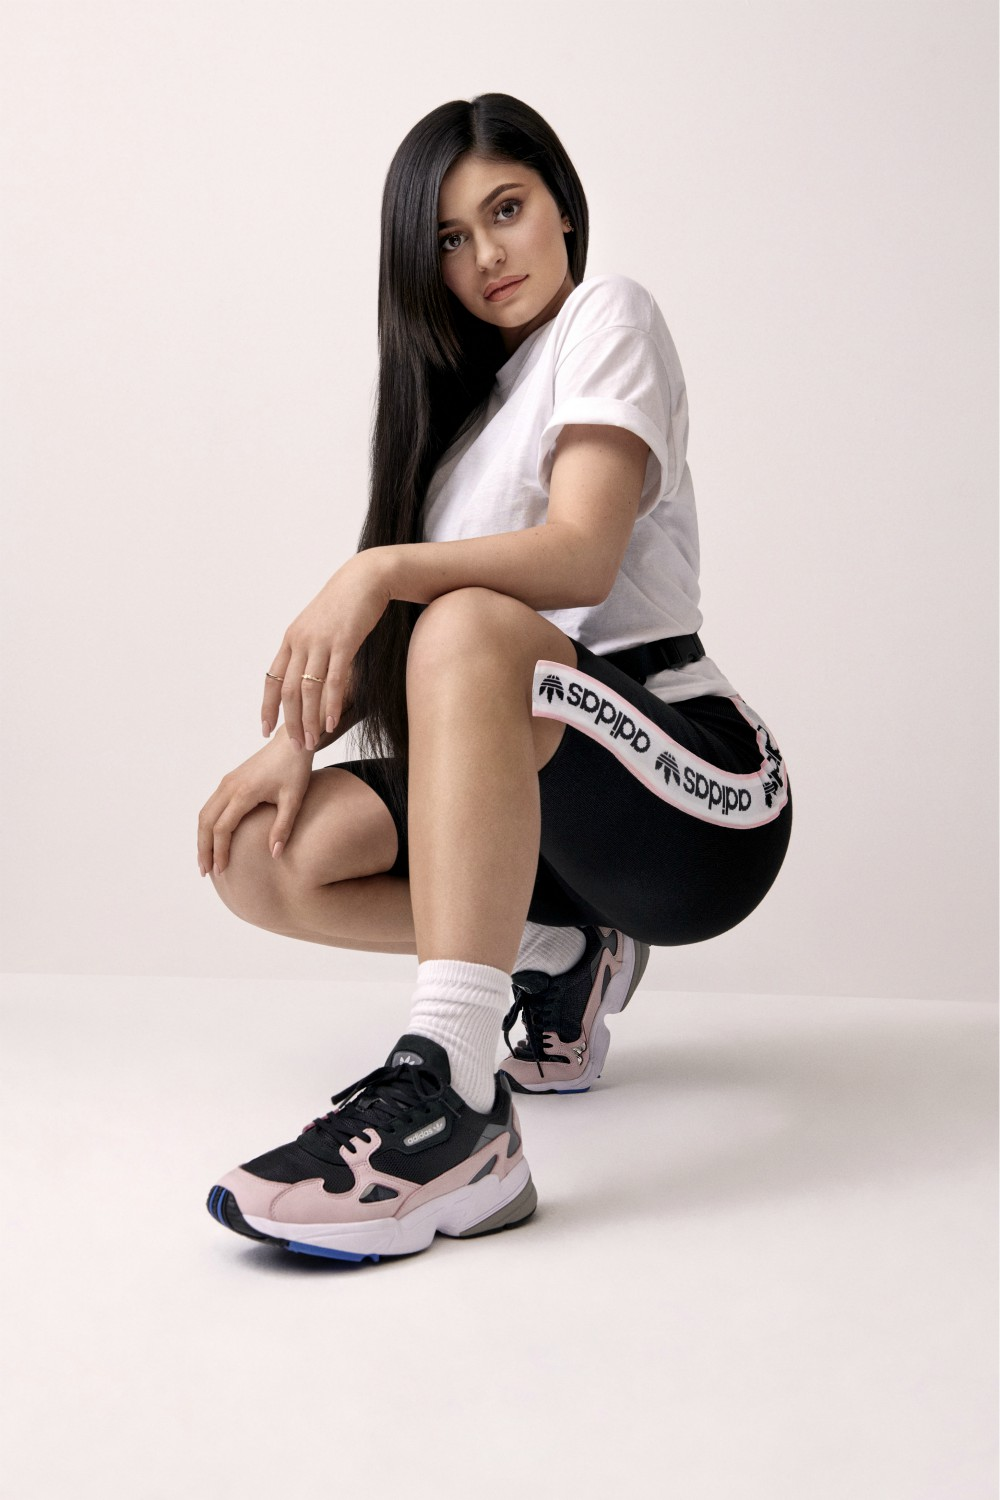 Kylie Jenner is the latest ambassador for Adidas and should help the brand reach teen and tween girls.